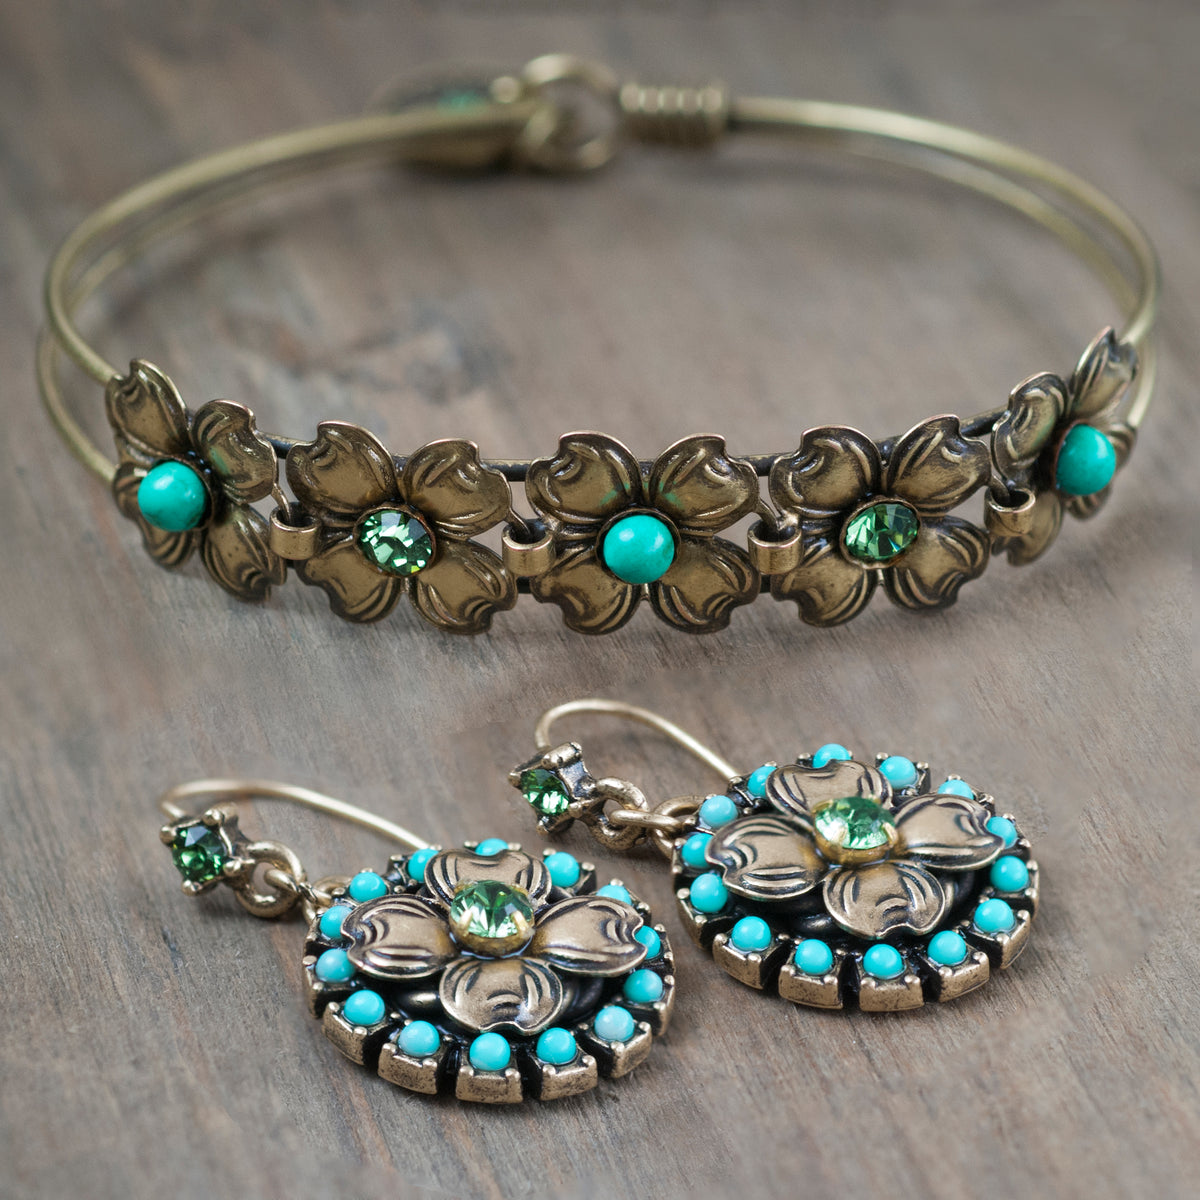 Dogwood Blossom Turquoise Bangle Bracelet & Earring Set